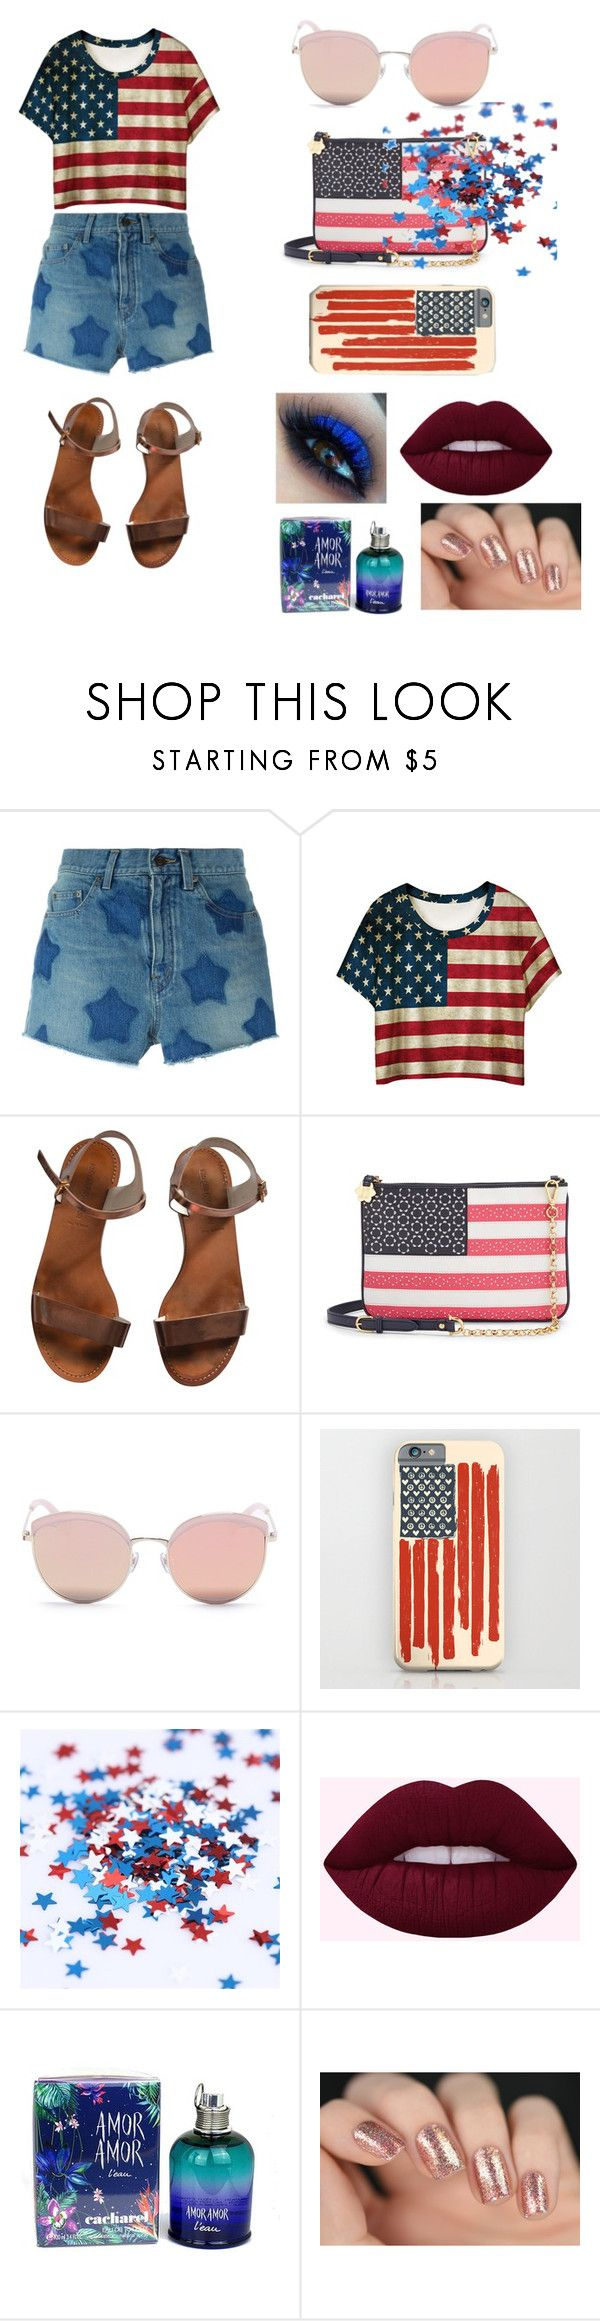 """""""Happy Independence Day !!! USA"""" by cristhina-a-dieguez-c on Polyvore featuring moda, Yves Saint Laurent, WithChic, Emporio Armani, Draper James, Stephane + Christian y Cacharel"""